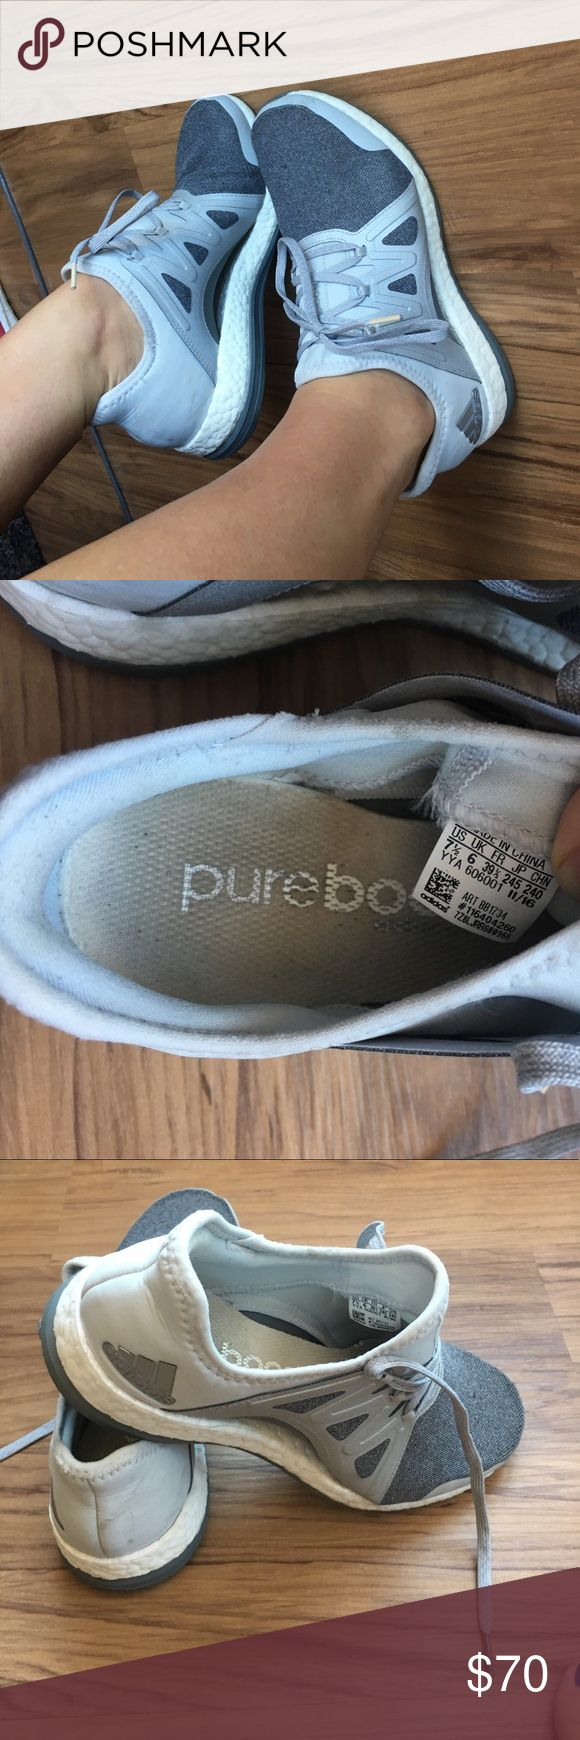 Adidas pure boost running shoe Adidas pure boost light weight running shoes: dark and light grays with white adidas Shoes Sneakers